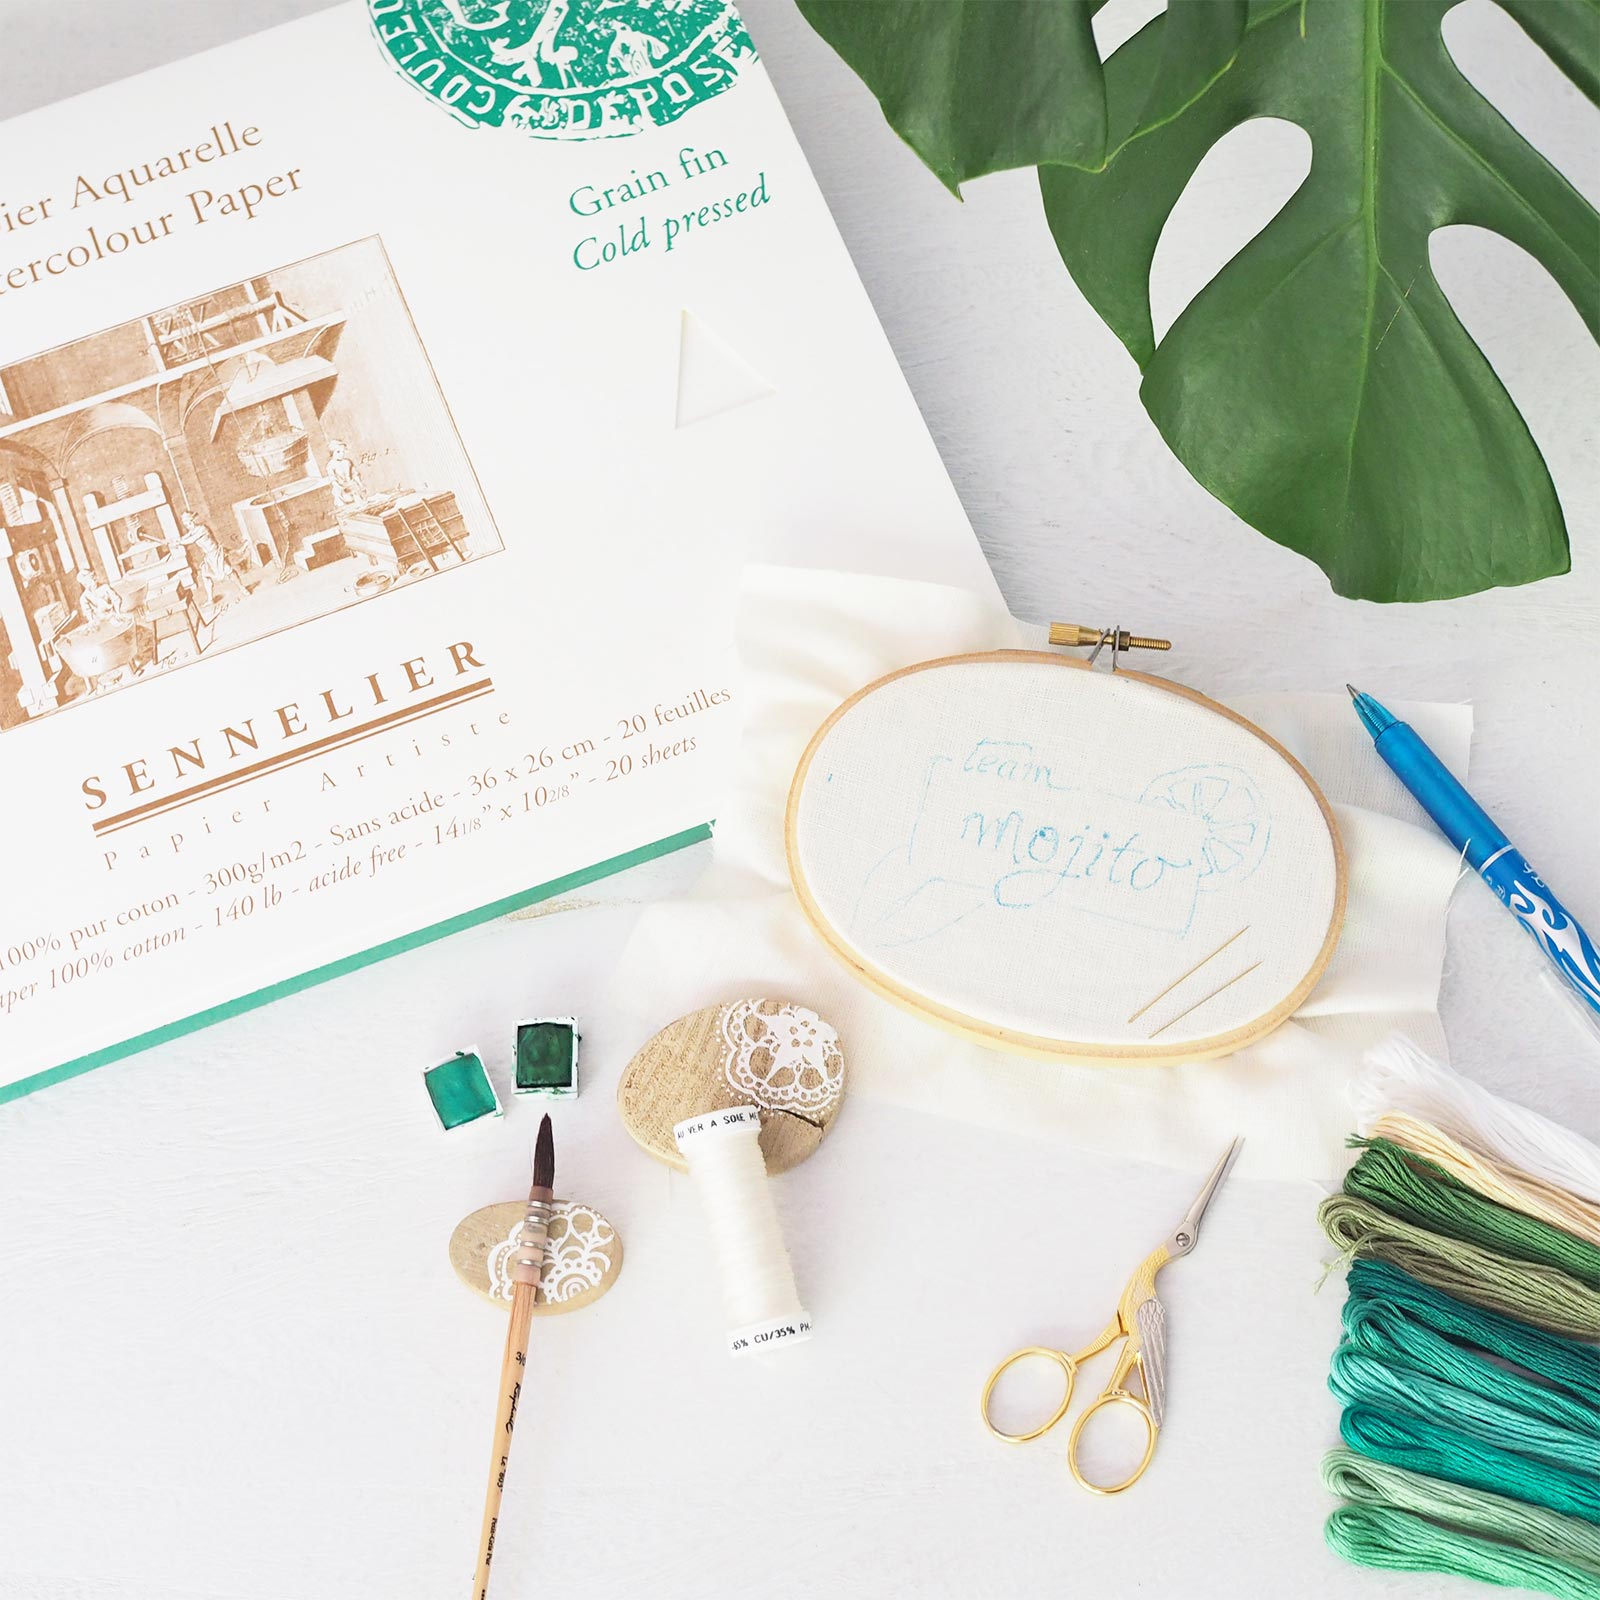 broderie aquarelle senellier green mojito encours laboutiquedemelimelo